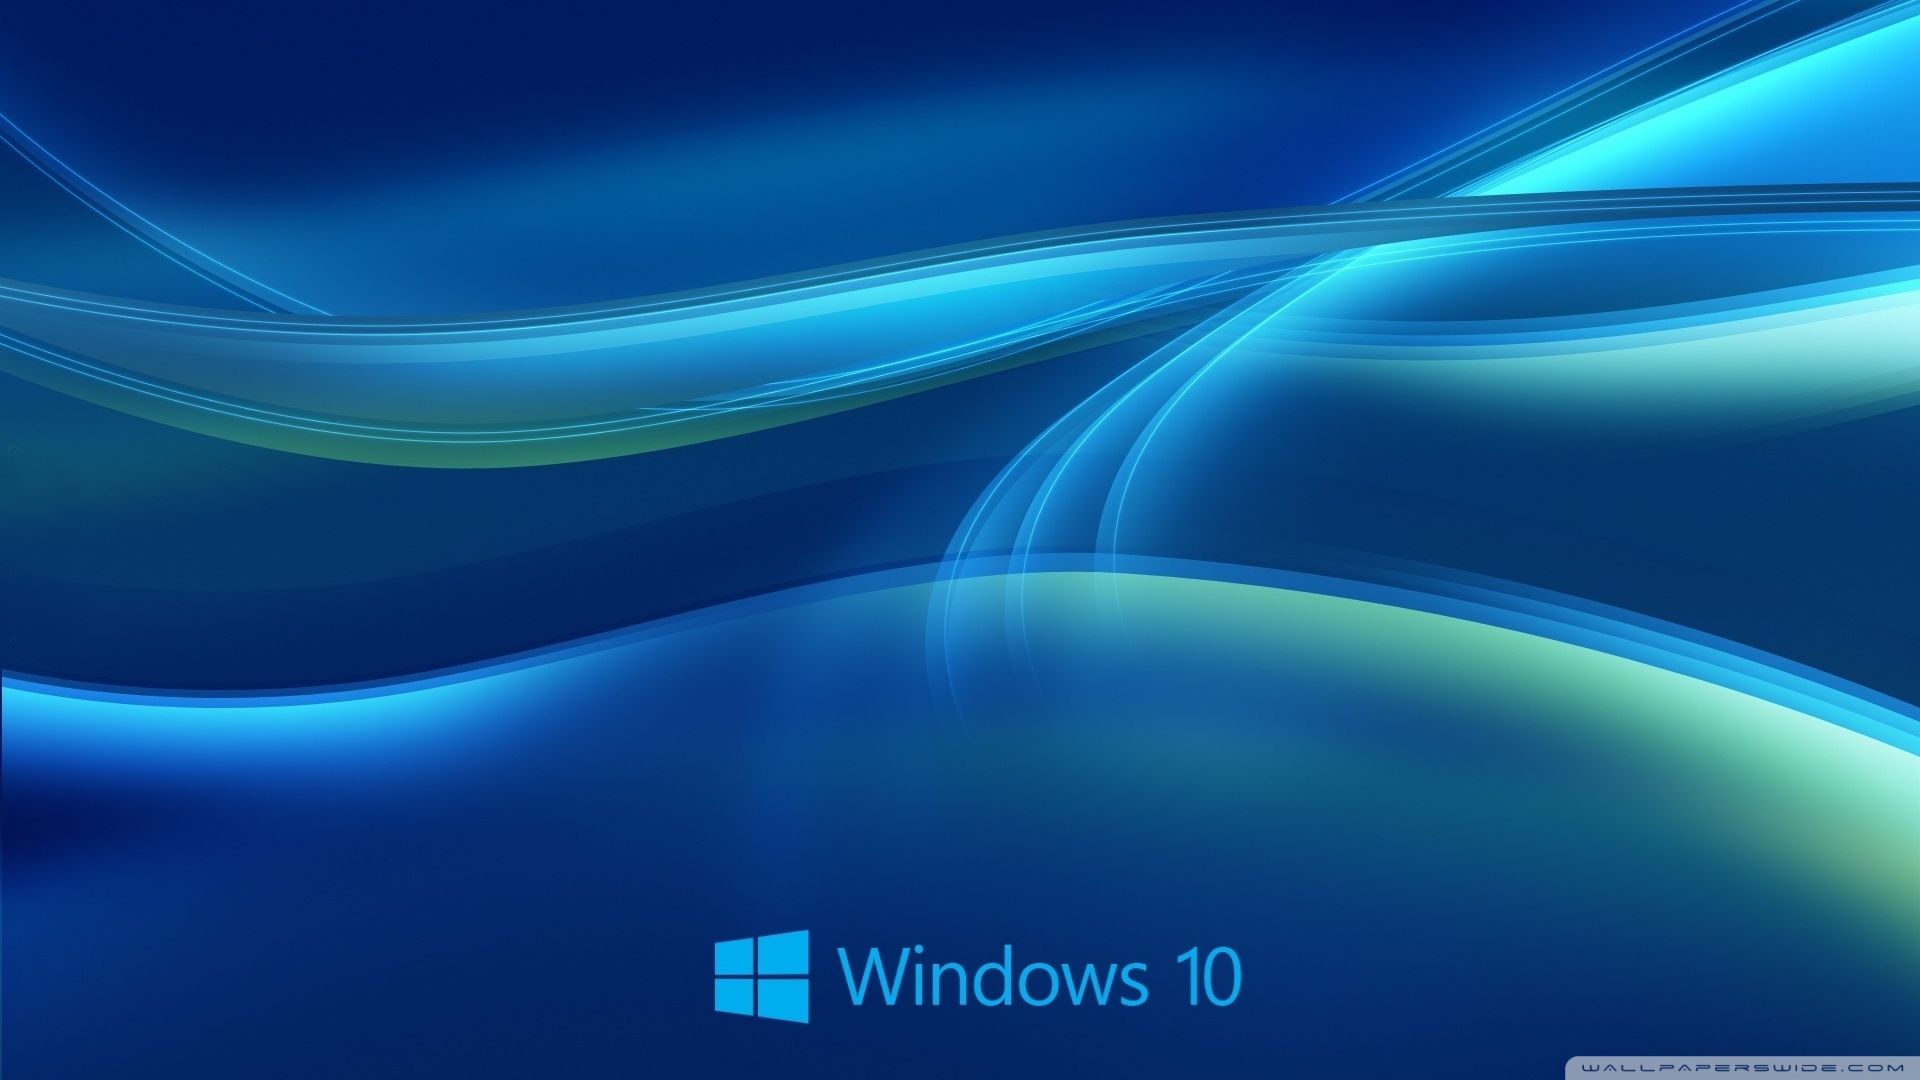 Windows 10 Hd Wallpapers Top Free Windows 10 Hd